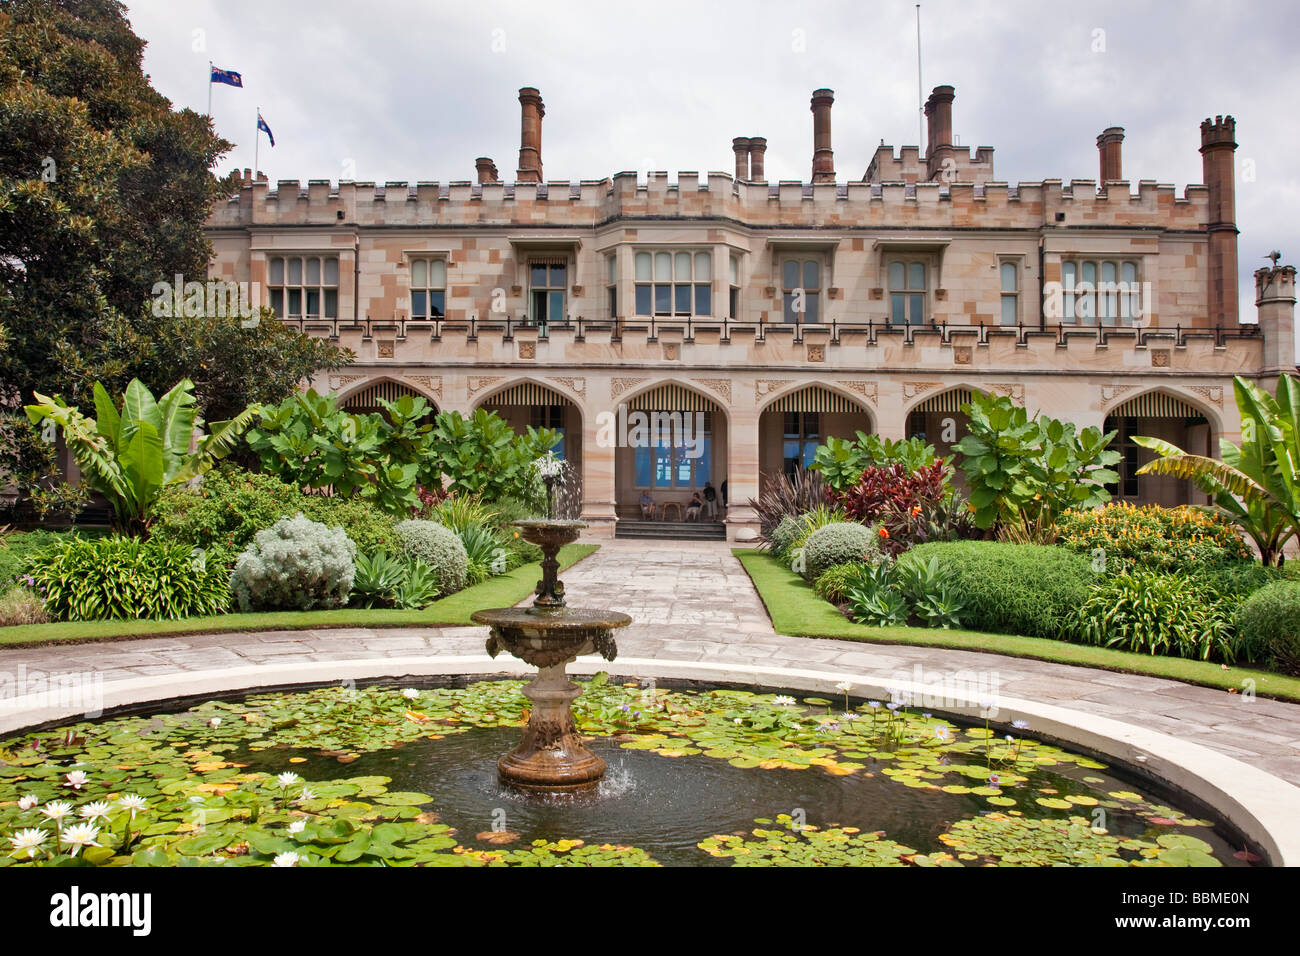 Australia New South Wales. Government House of New South Wales situated in the Royal Botanic Gardens. - Stock Image